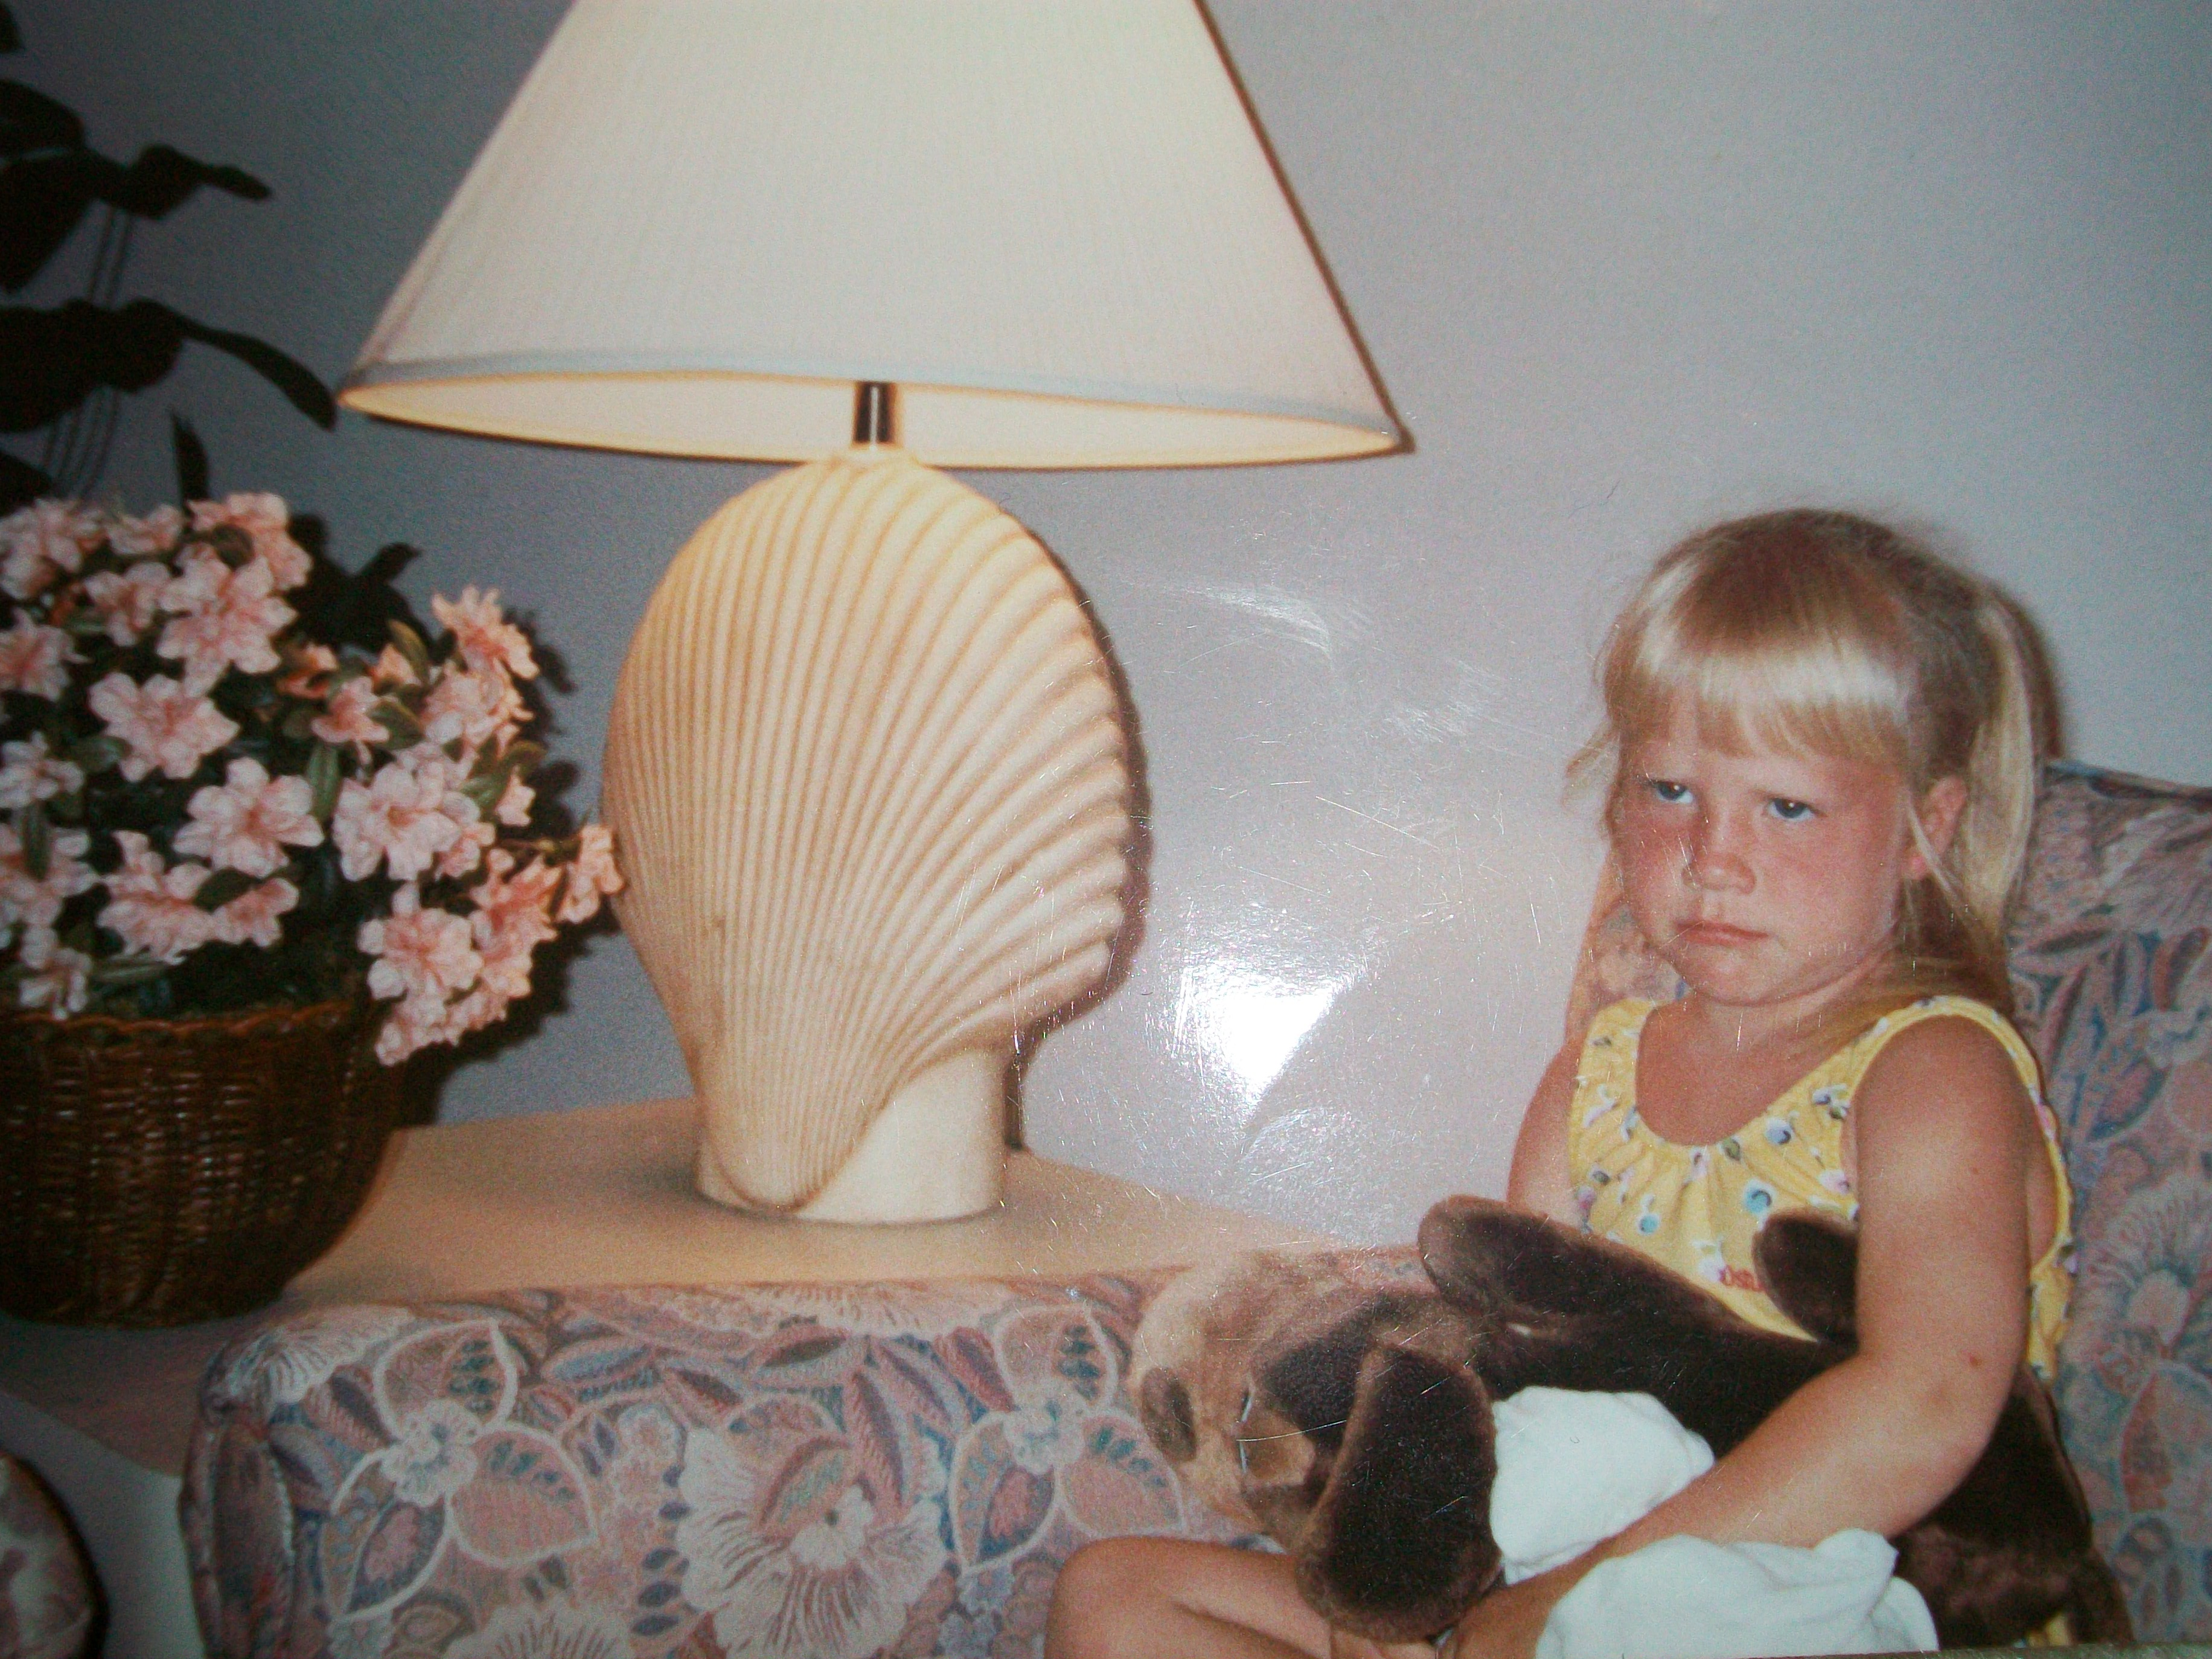 The crabbiness started at a young age...